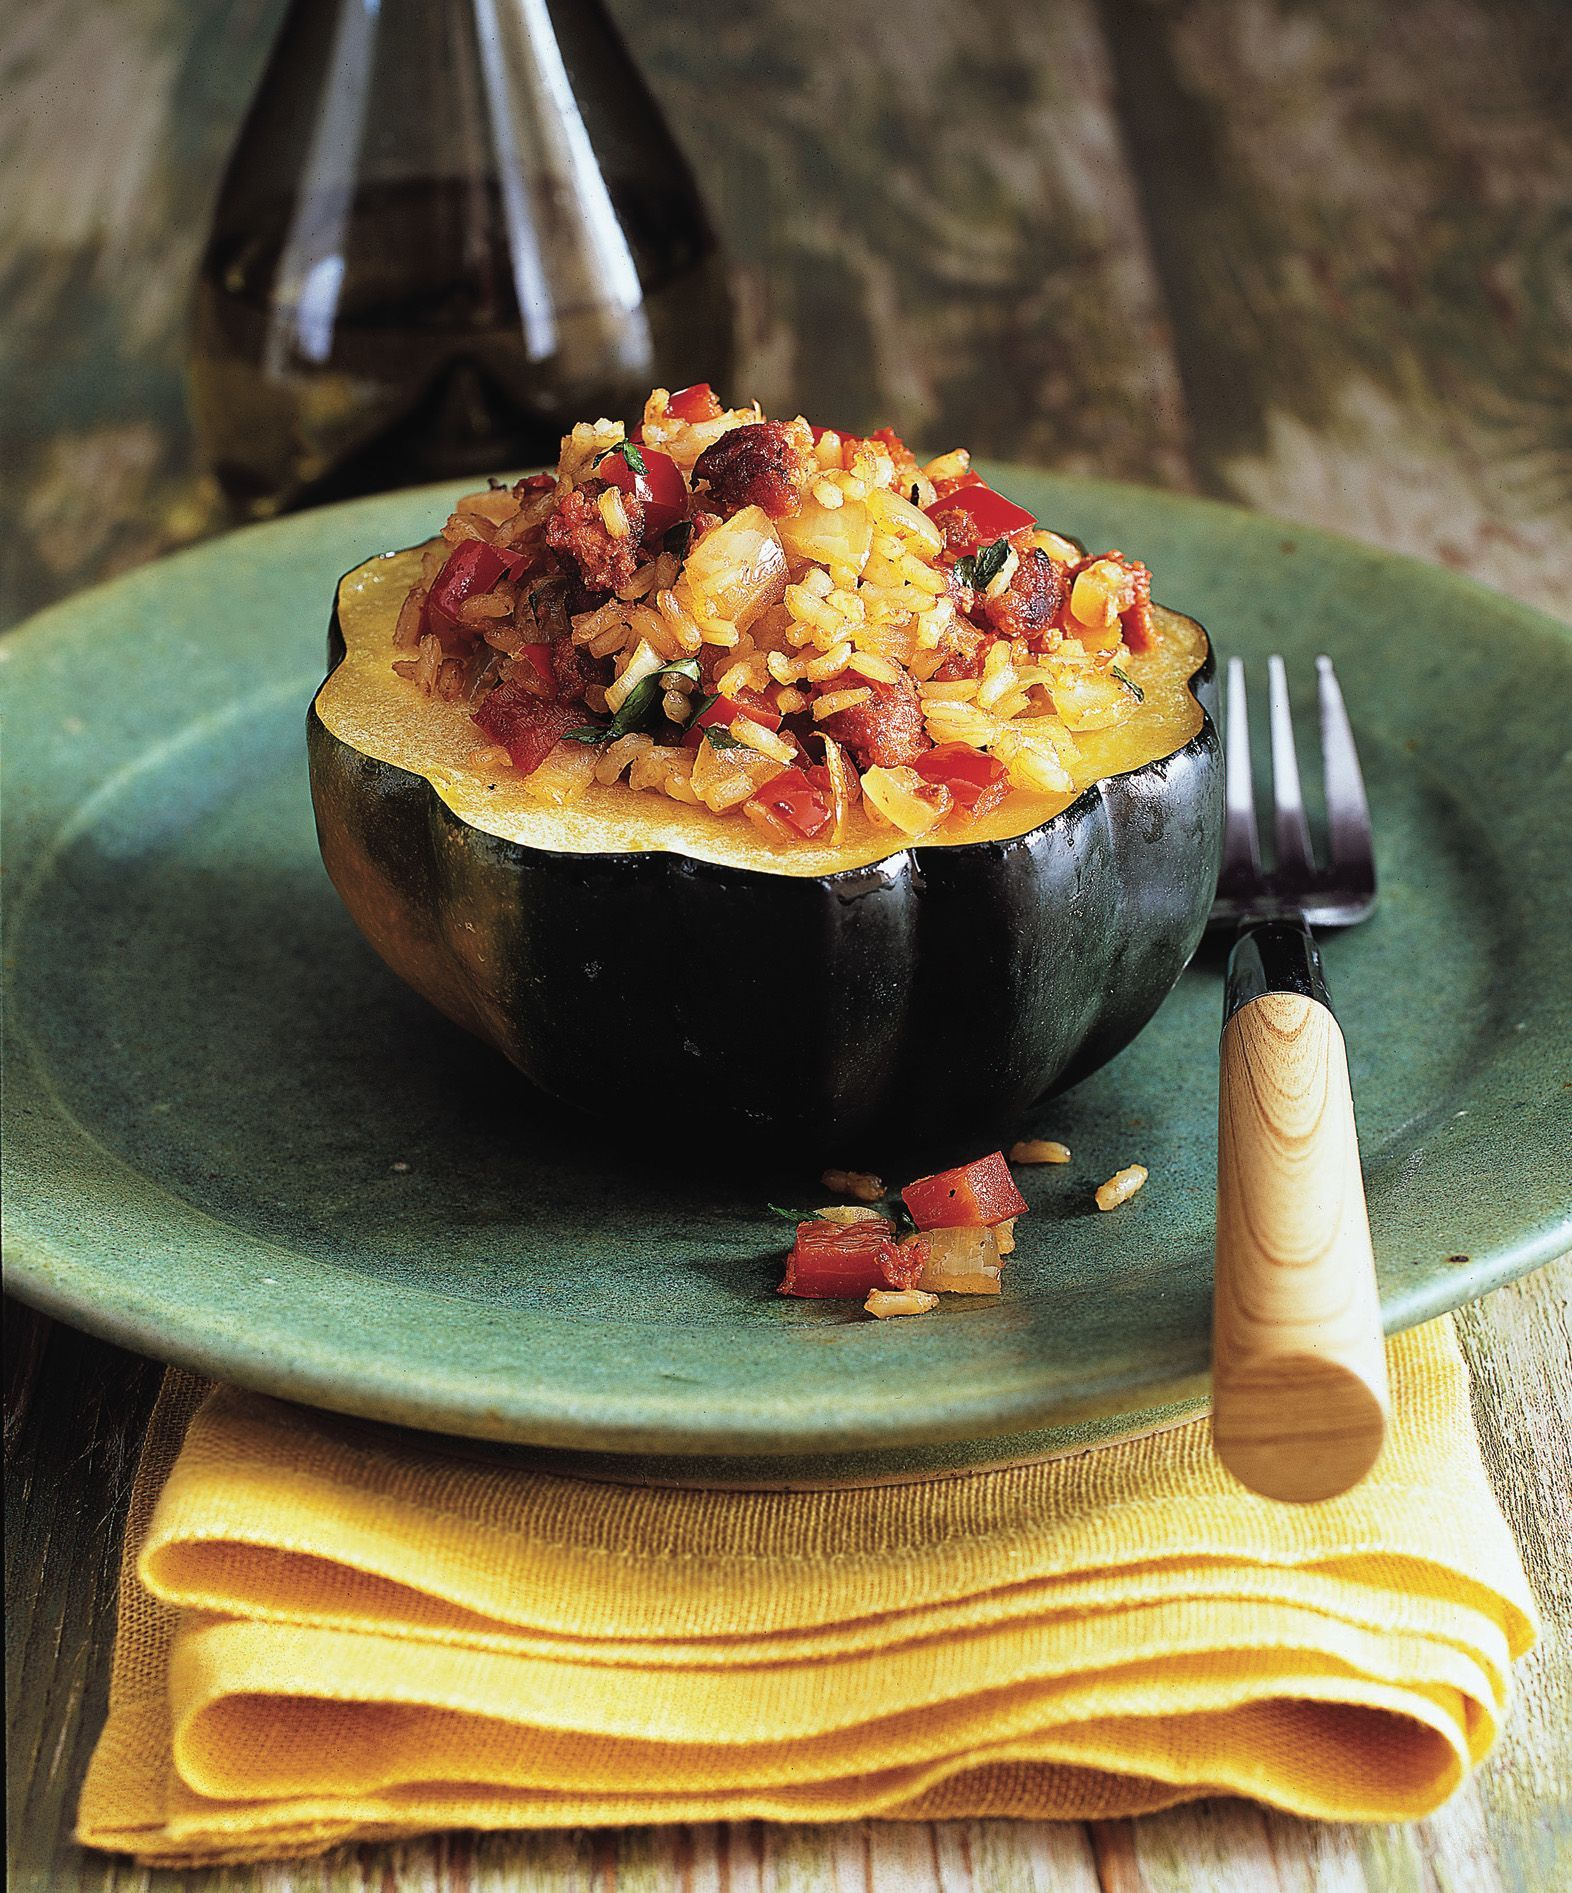 Acorn Squash With Brown Rice And Turkey Sausage Recipe Food